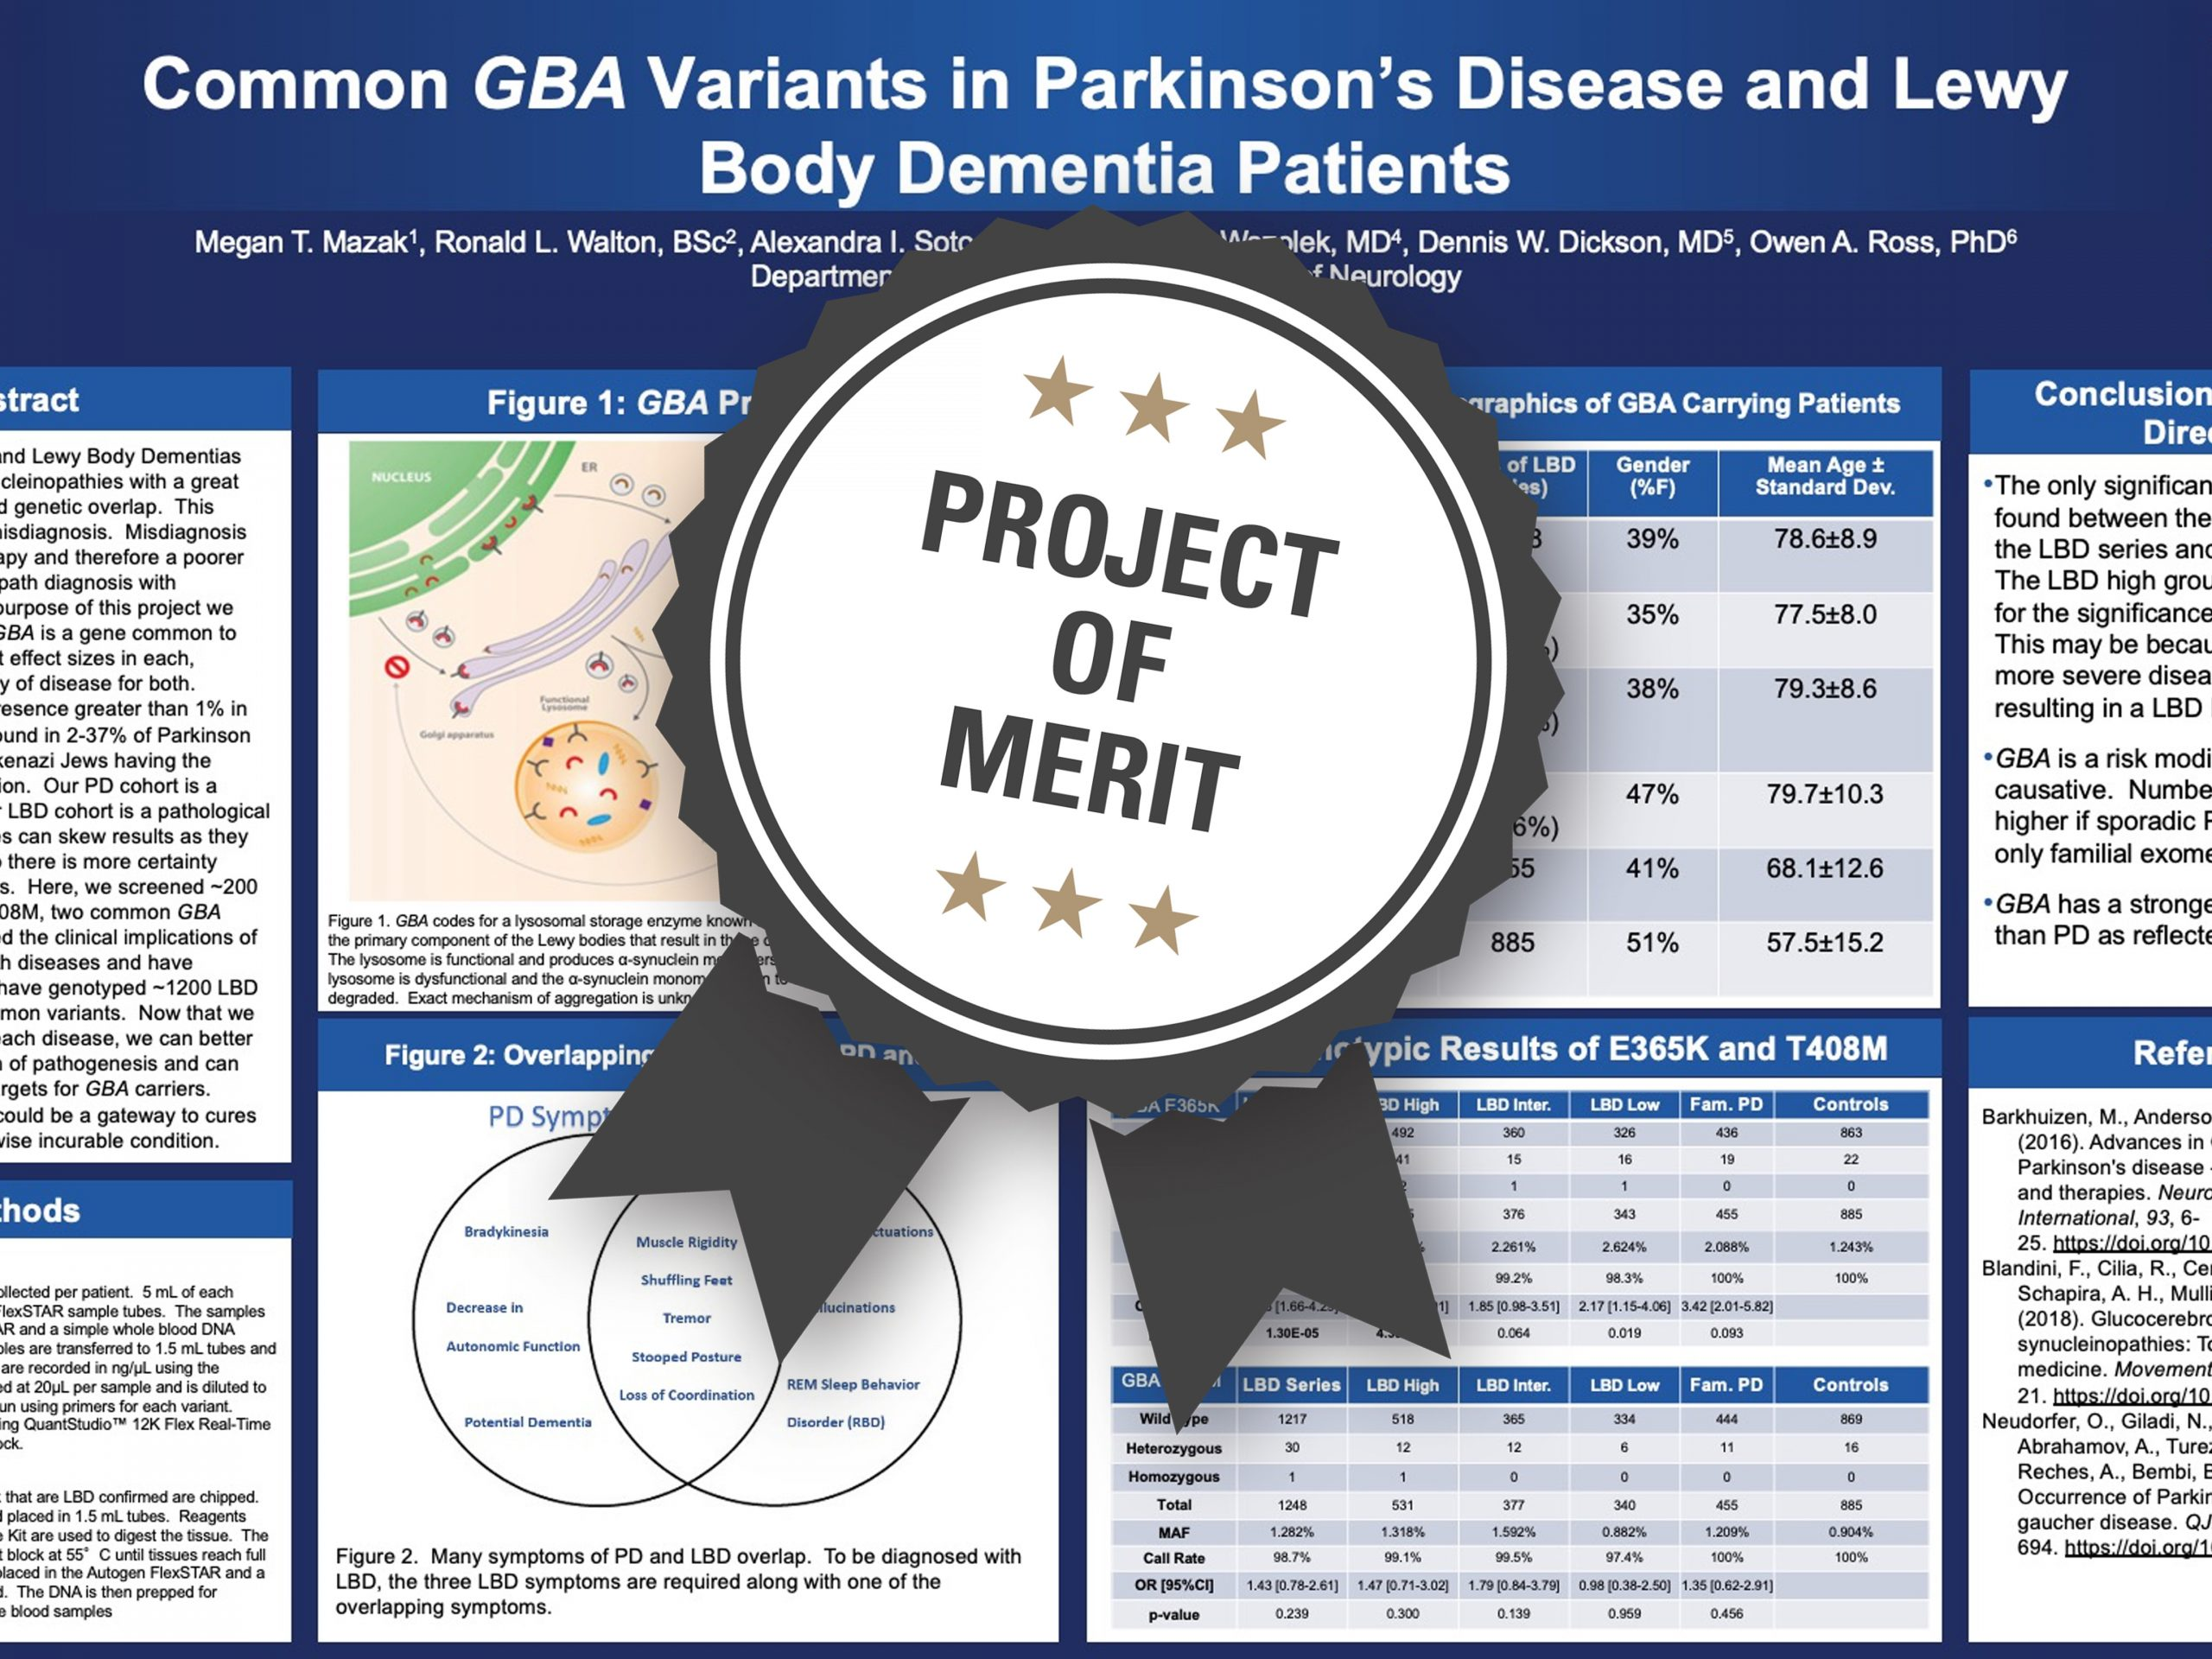 Common GBA Variants in Parkinson's Disease and Lewy Body Dementia Patients Project of Merit poster